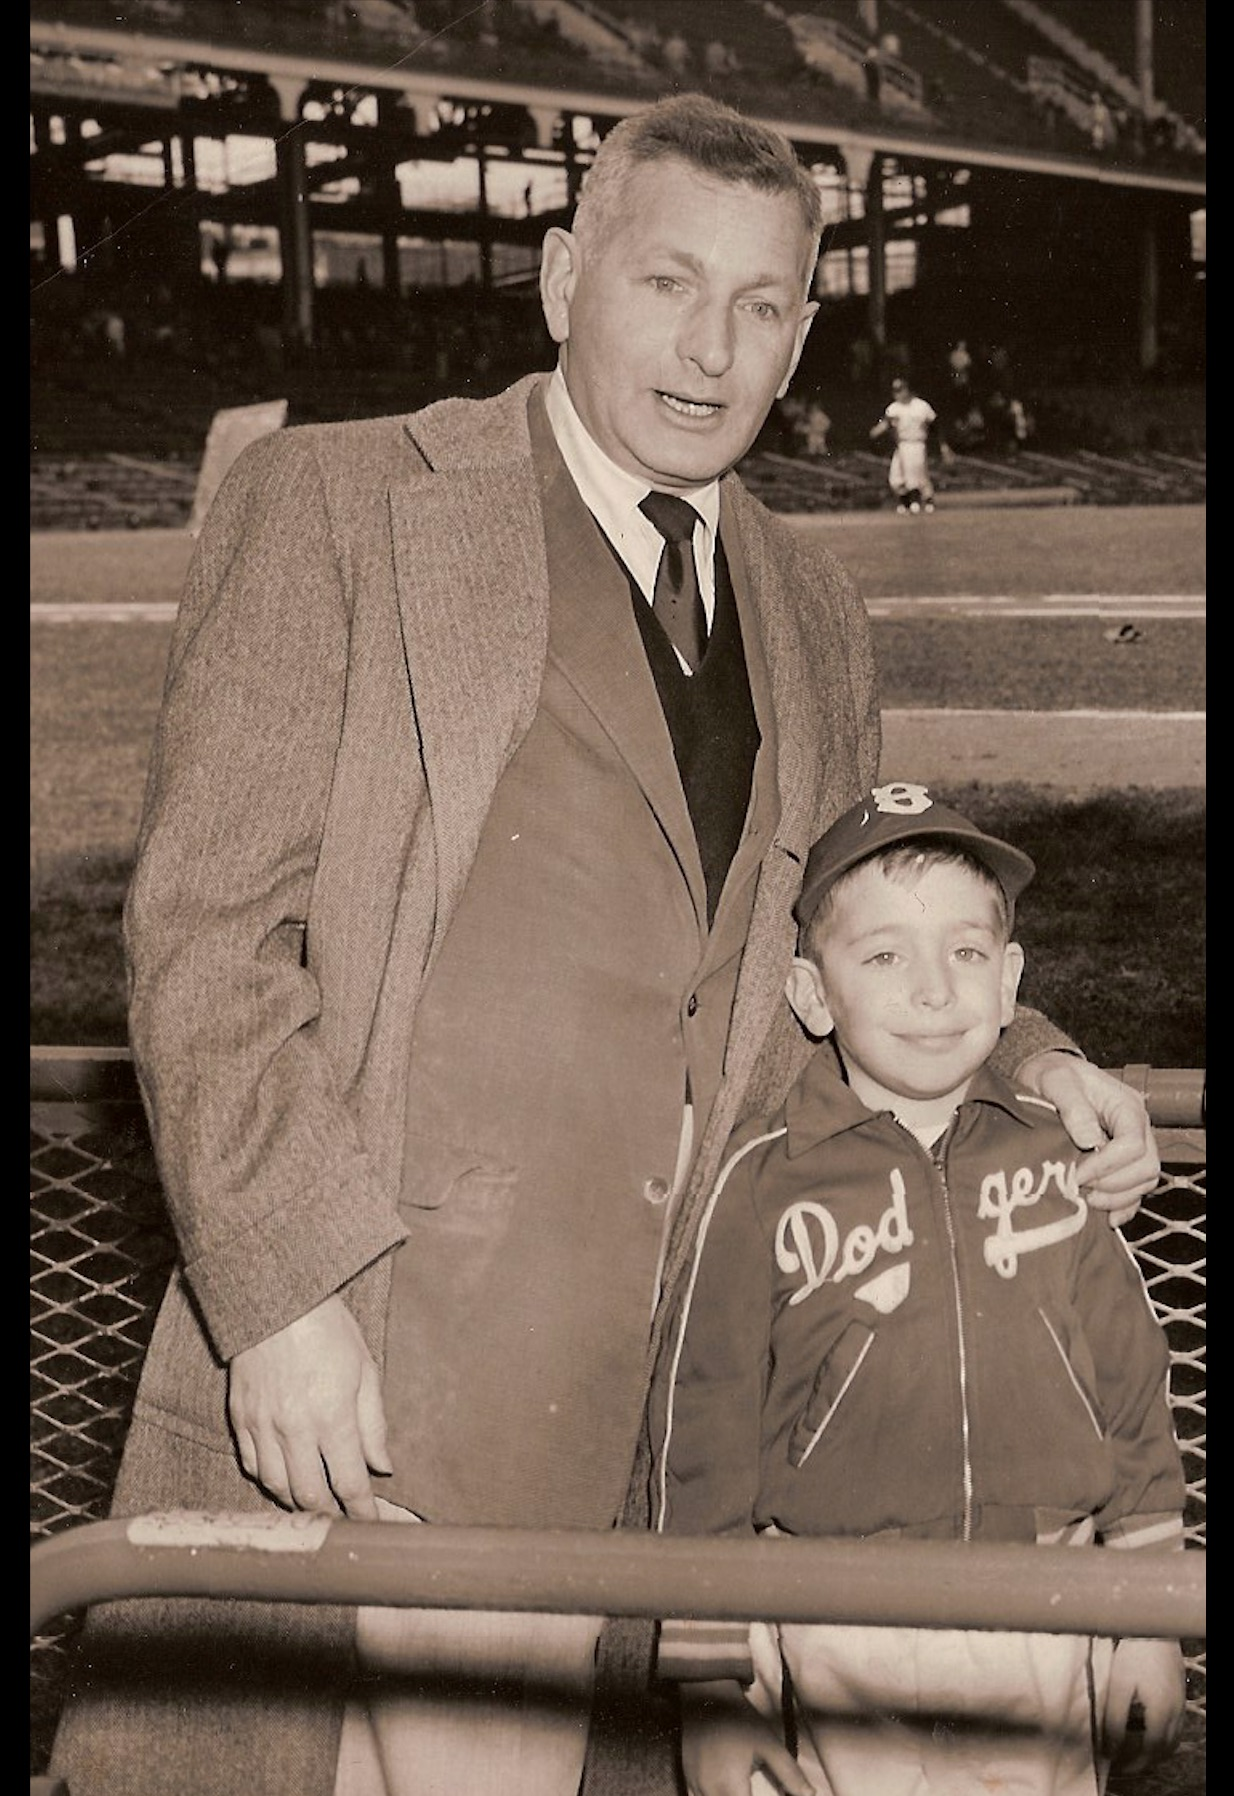 Field of Dreams director at Ebbets Field in 1955